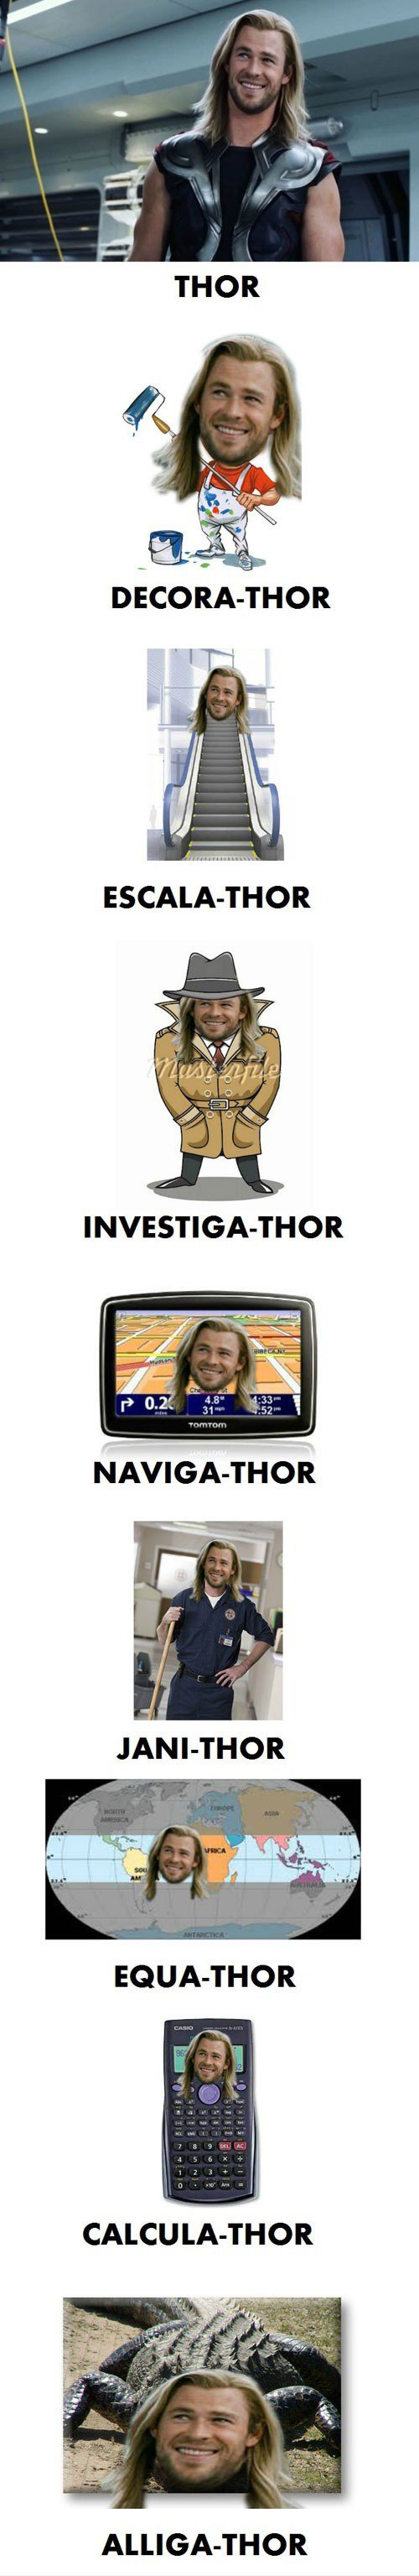 Vamers - Humour - Thorsday - Putting Thor in more than just Thorsday - Main